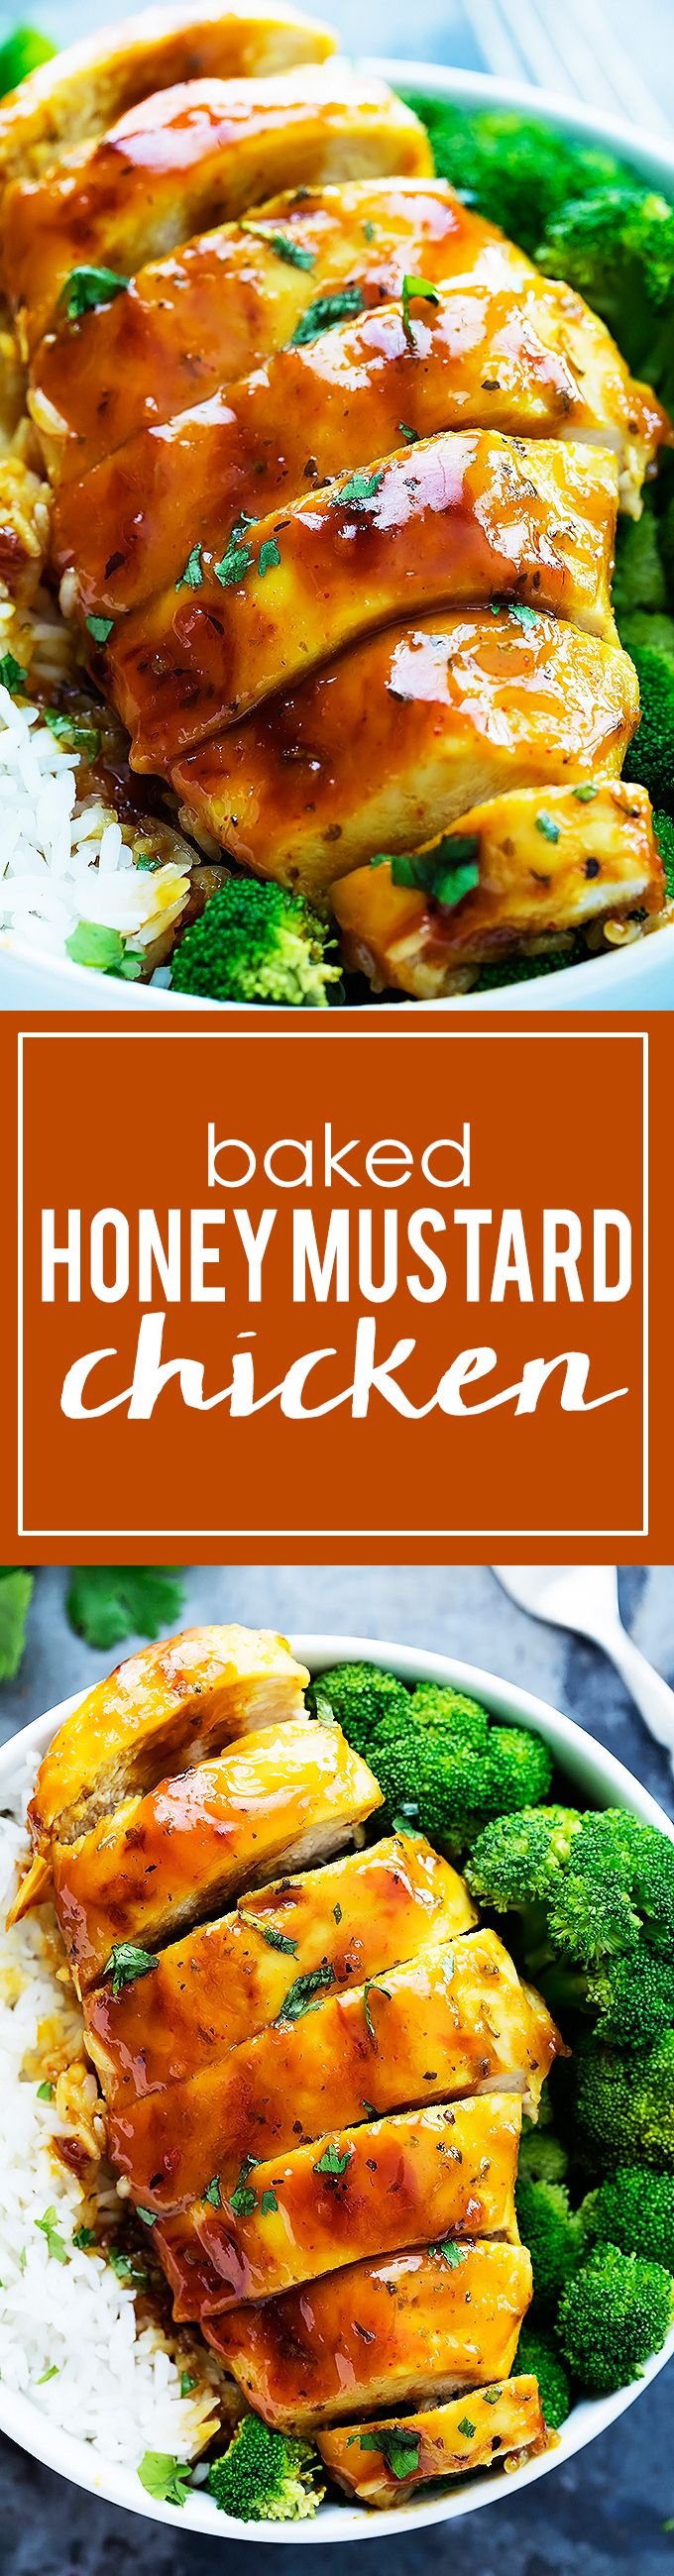 Baked Honey Mustard Chicken Savory Juicy Chicken Baked In A Zesty Honey Mustard Sauce Perfect For Serving With Your Favorite Veggies Over Noodles Or